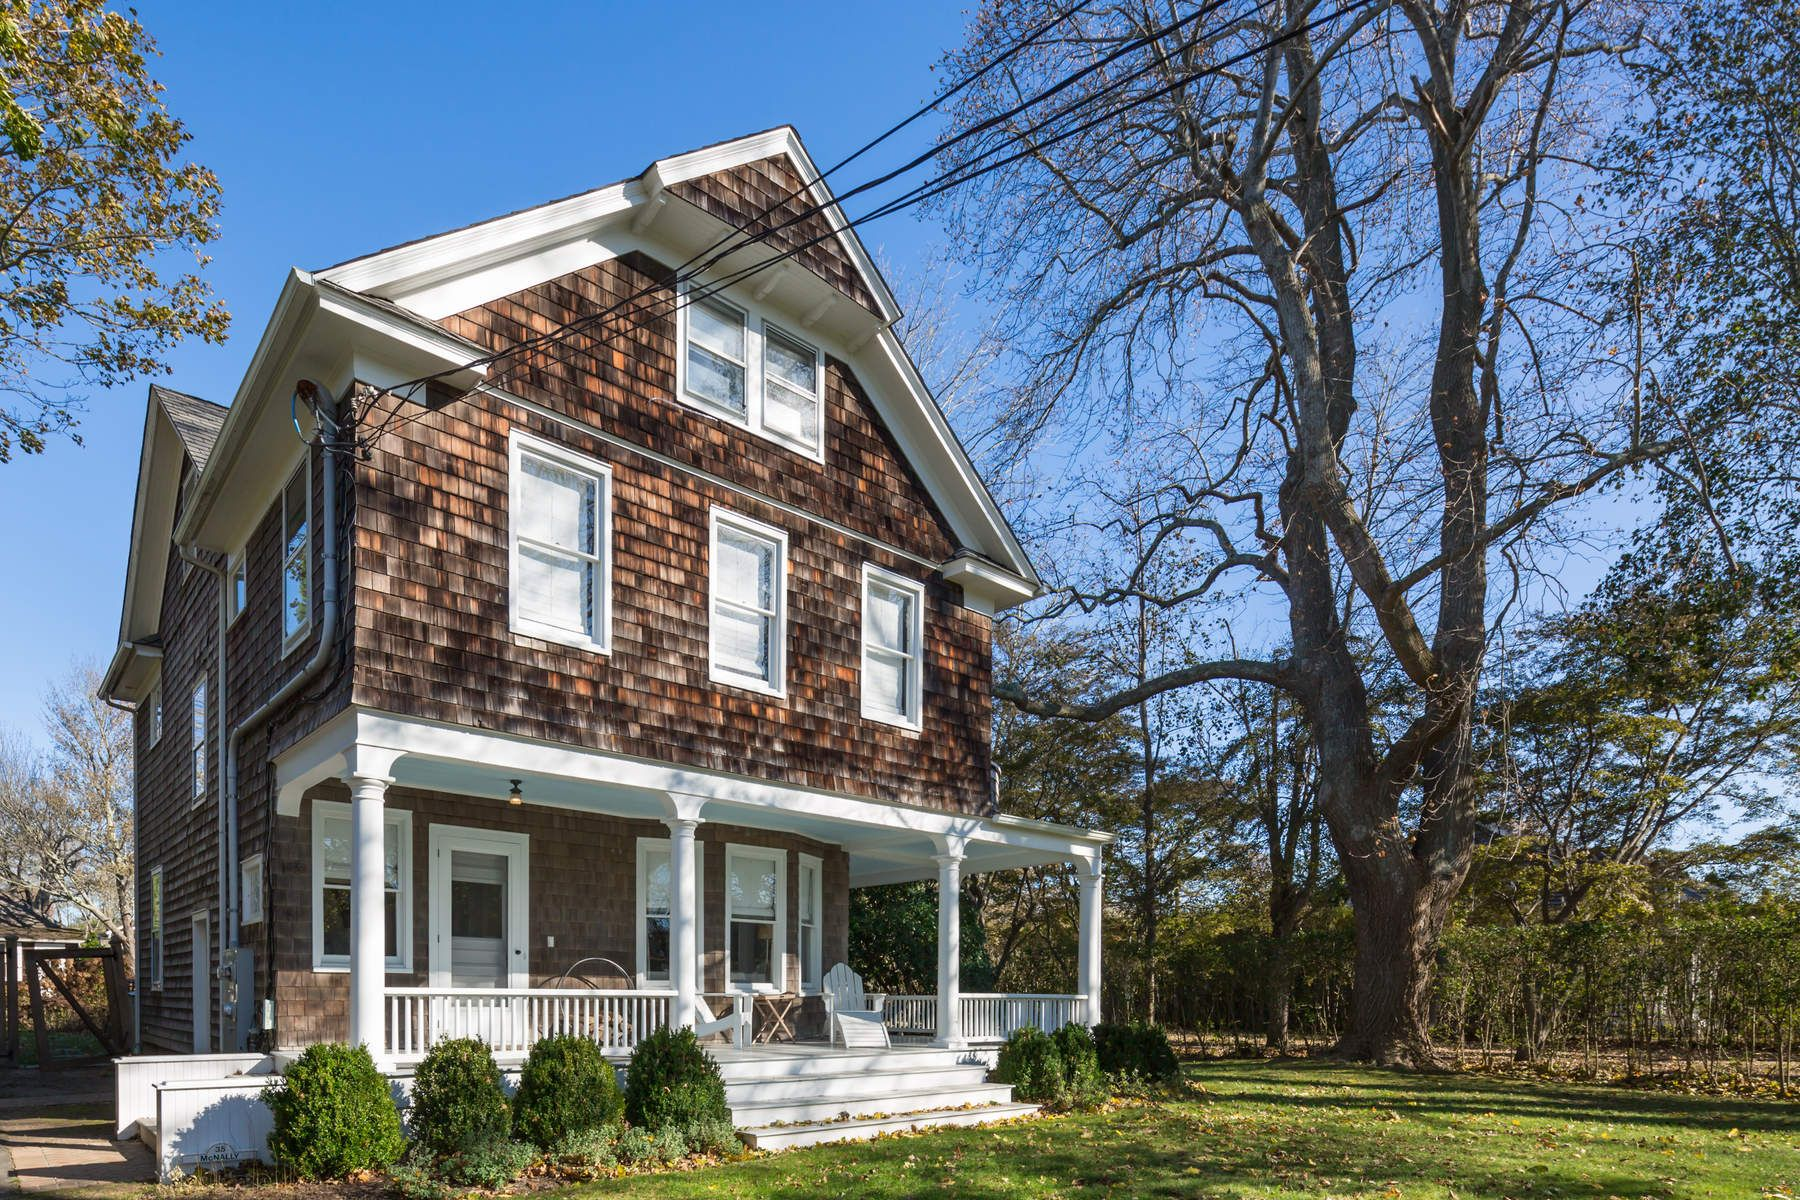 Single Family Home for Rent at CHARMING SUMMER COMPOUND Amagansett, New York 11930 United States